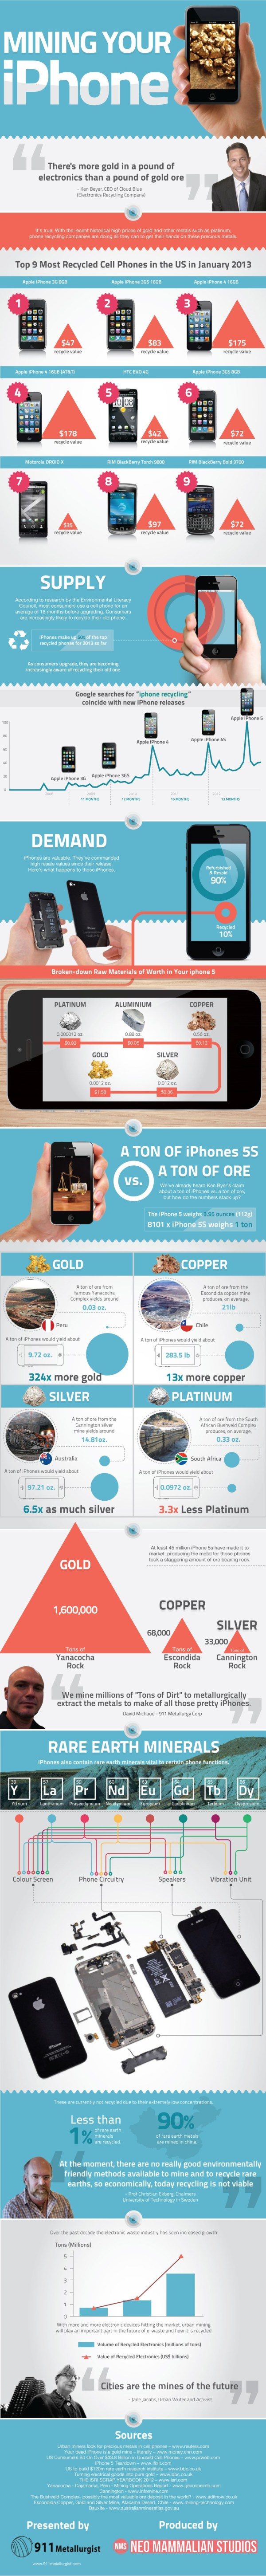 Mining-your-iphone-1